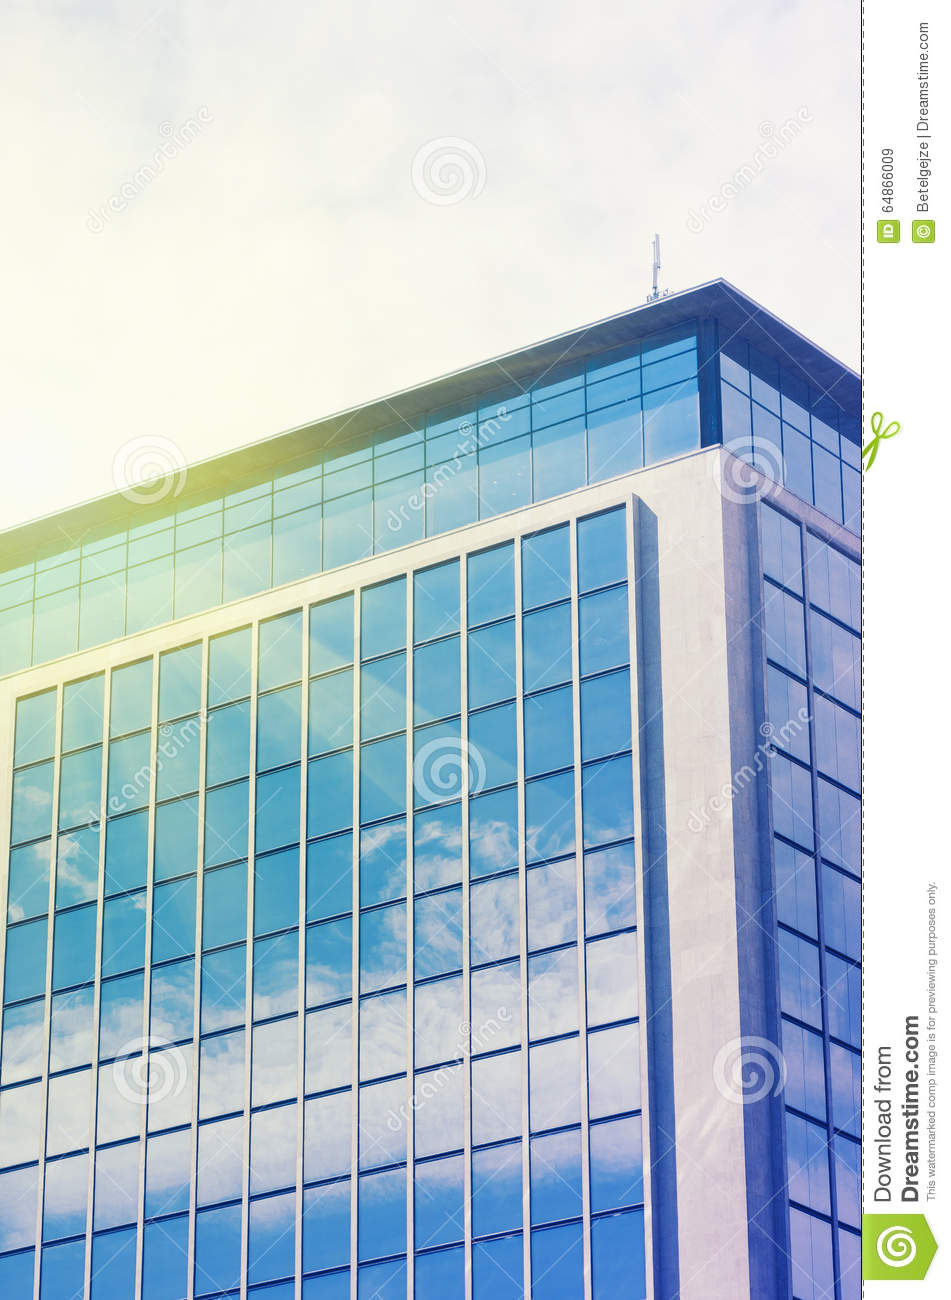 Building Glass Window : Modern business office building with blue glass windows